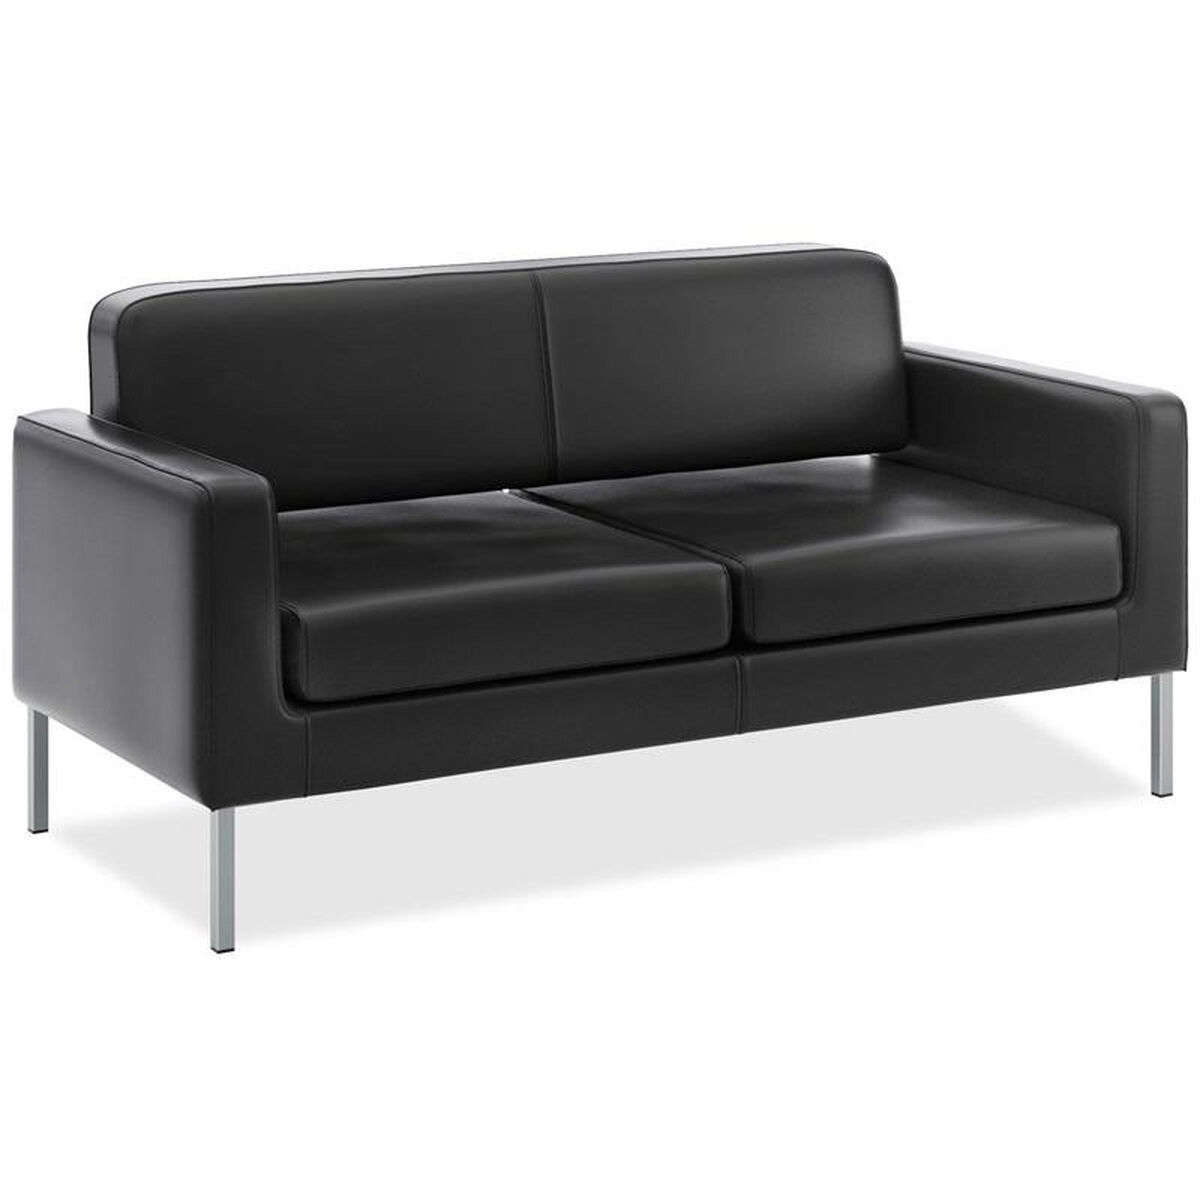 Our Basyx Low Back Two Seat Sofa With Arms Black Leather Is On Now